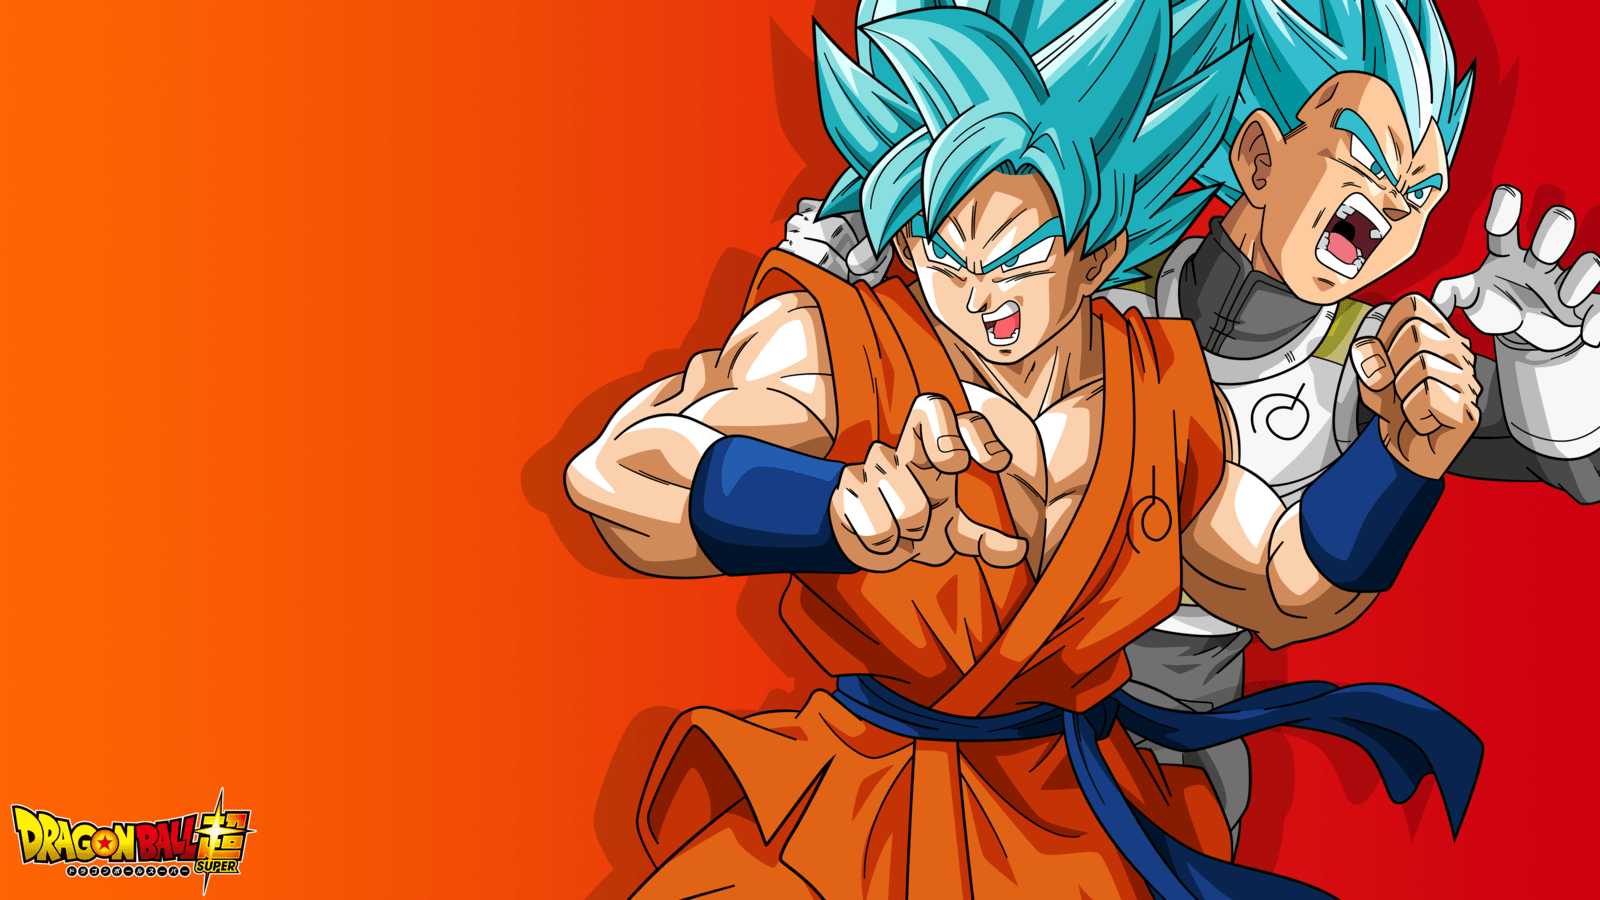 4K Dragonball Super Wallpaper (Goku and Vegeta) by RayzorBlade189 ...